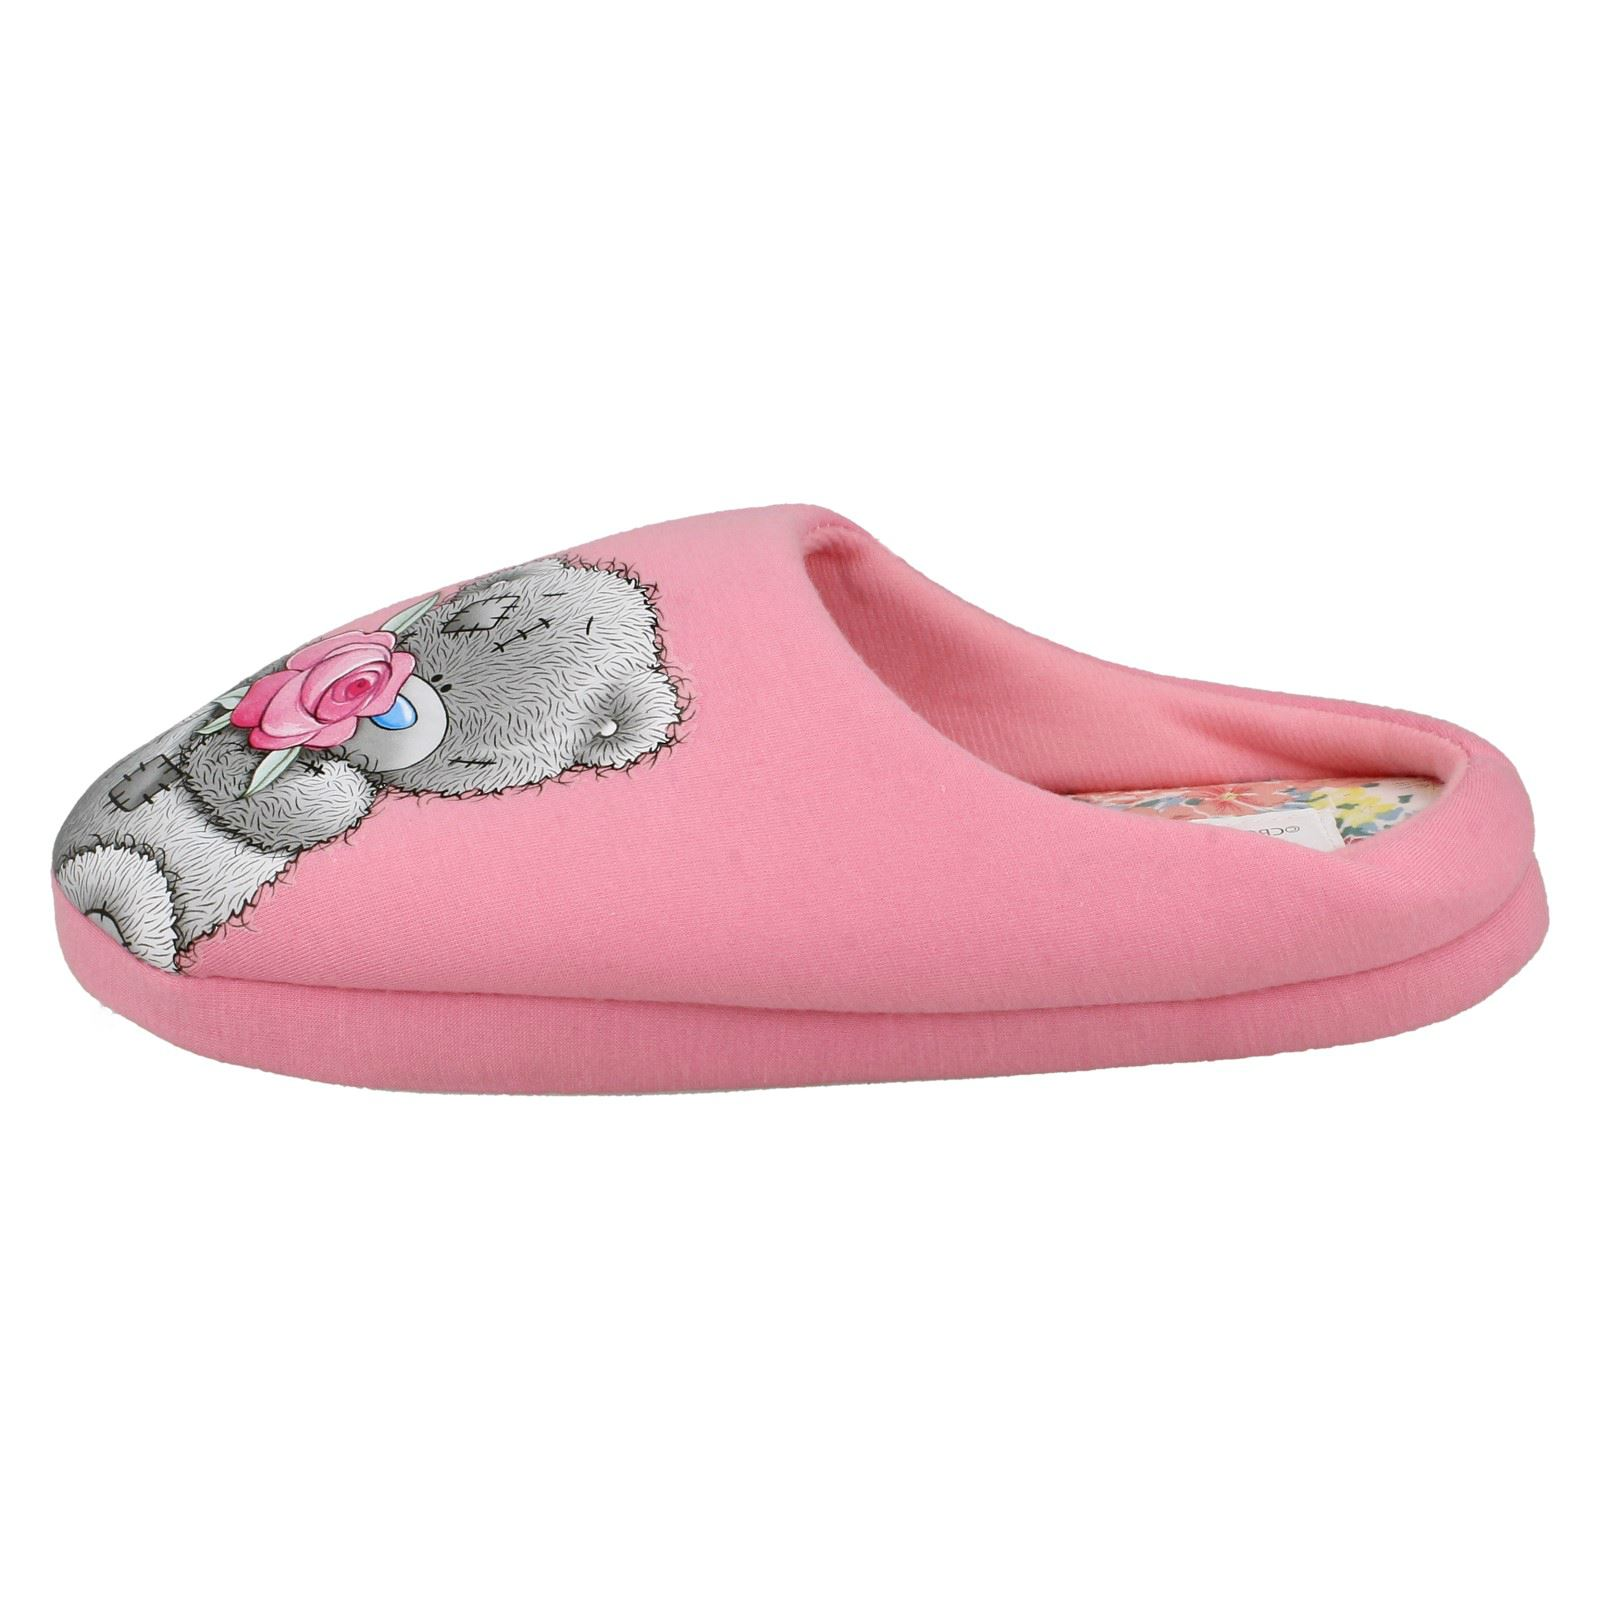 Ladies Me To You Slippers *Tatty Teddy Rose*